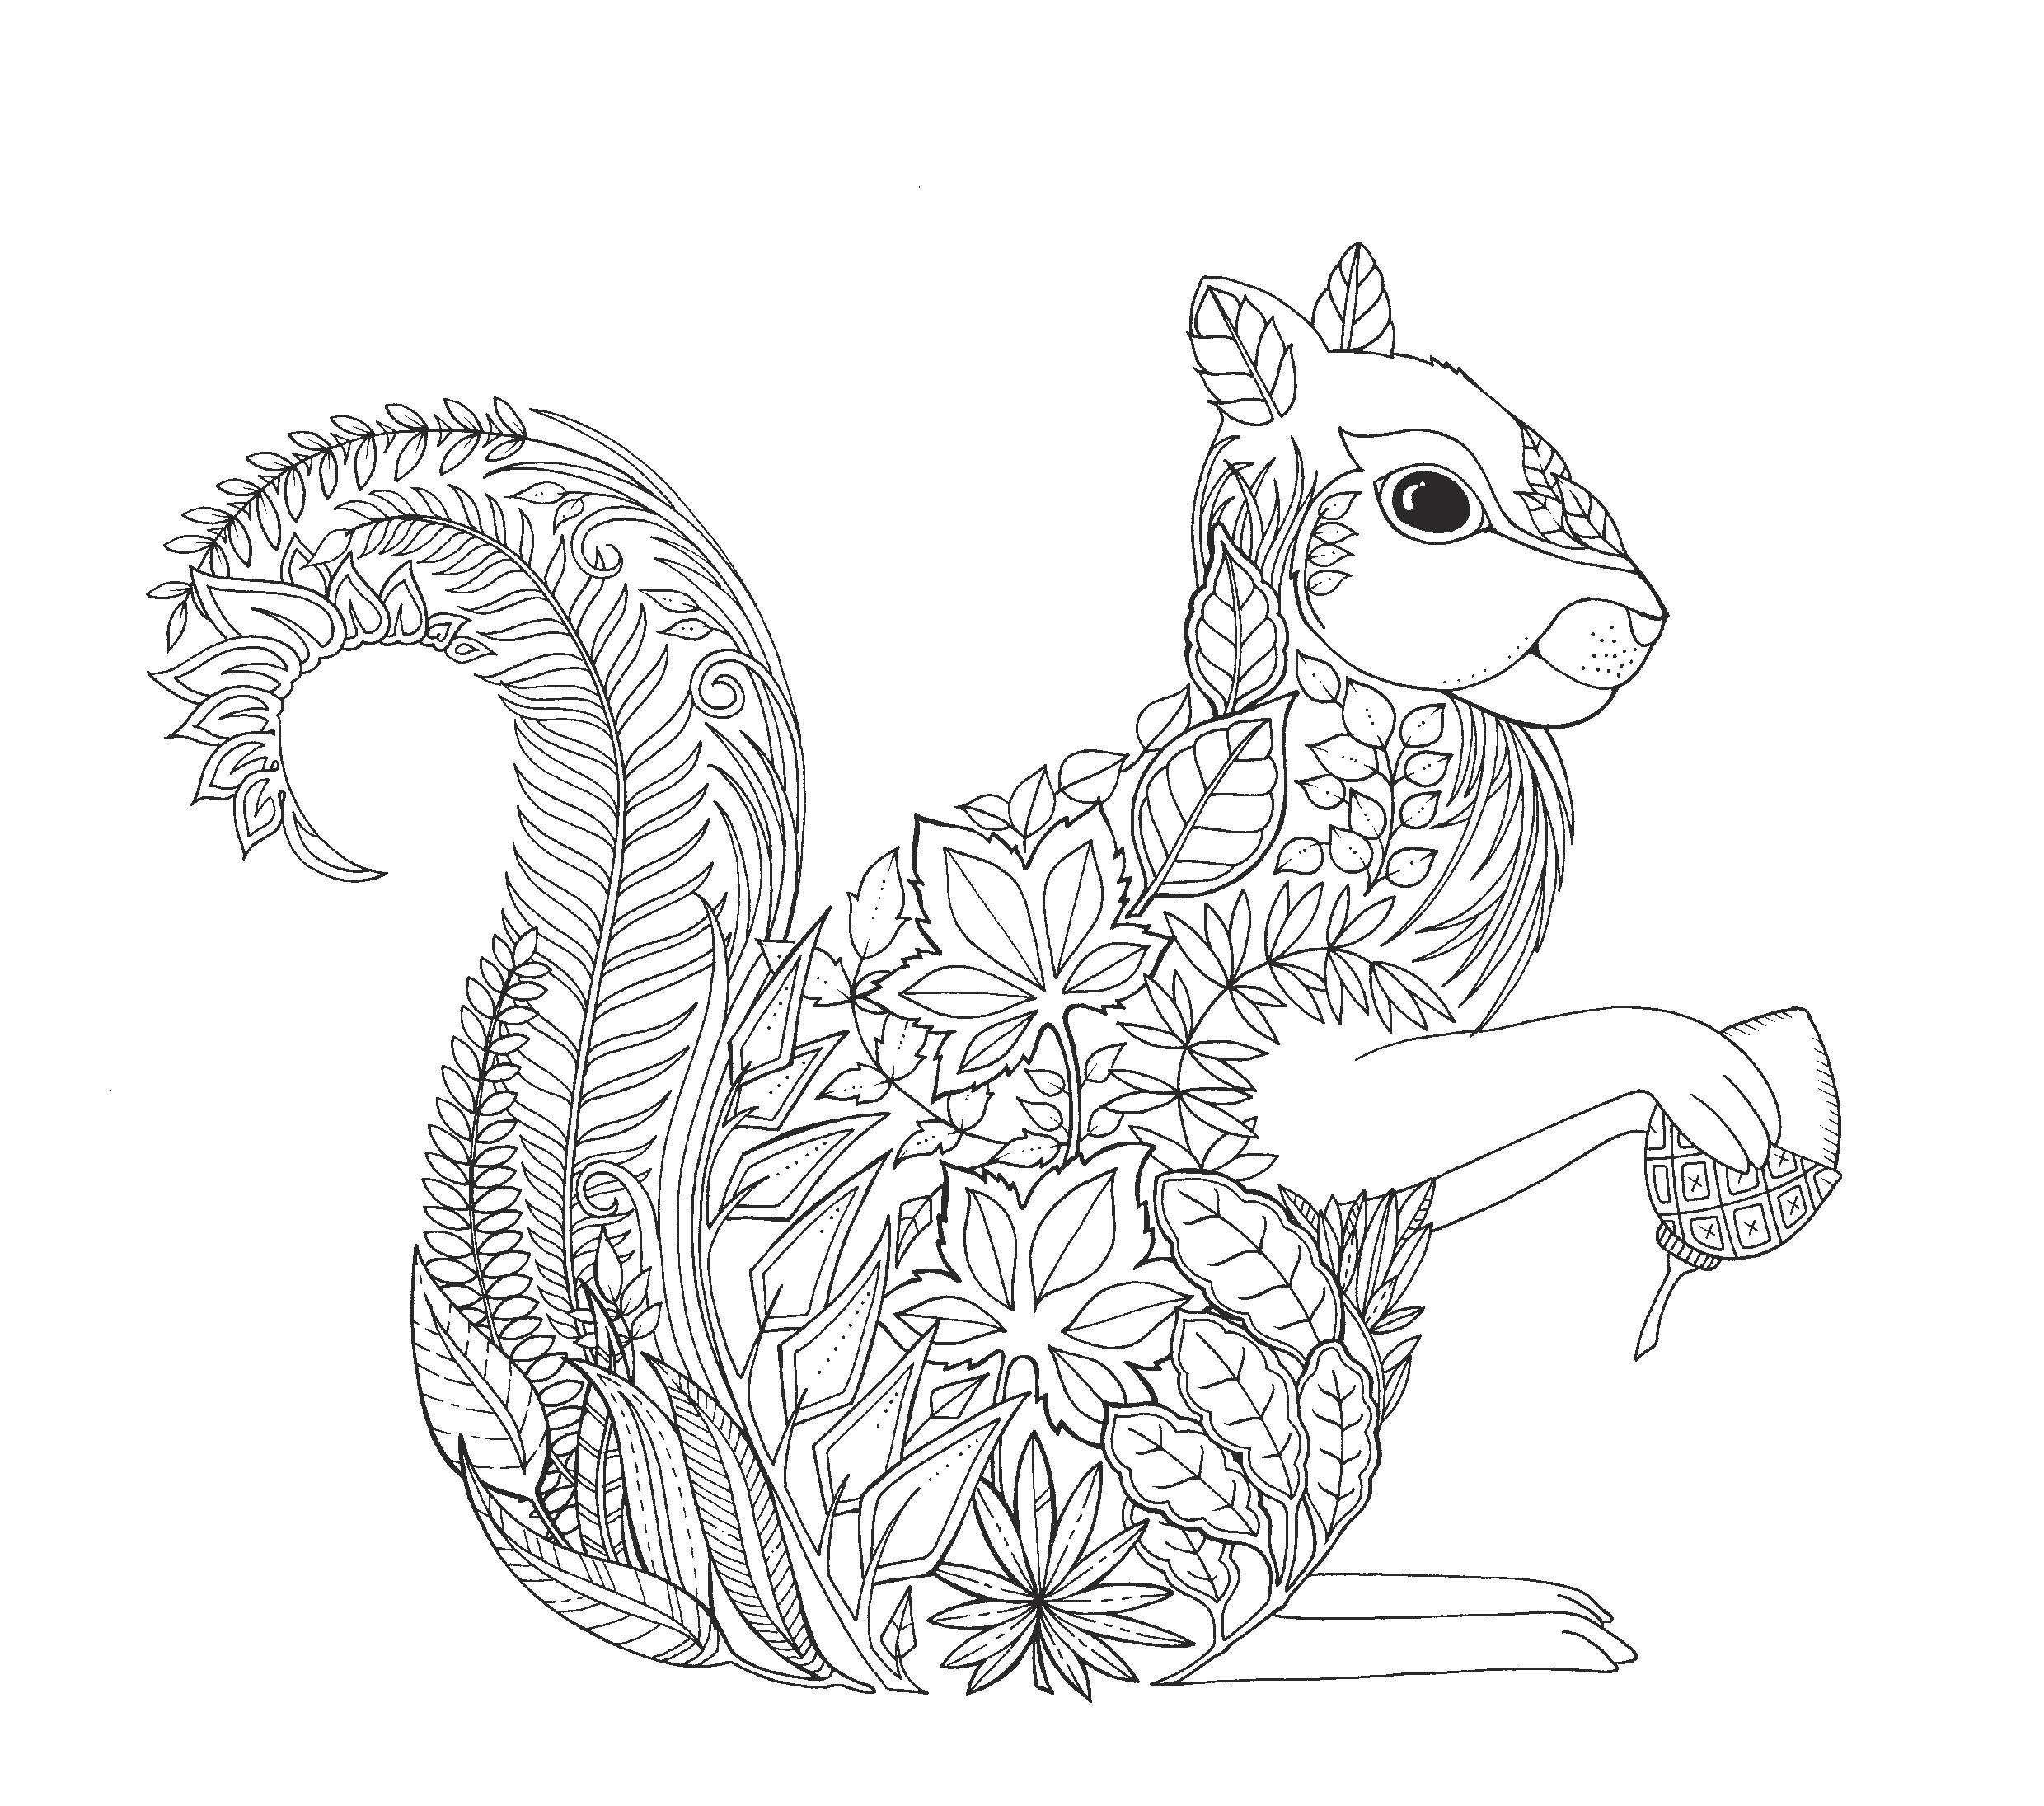 squirrel Artist Johanna Basford Enchanted Forest Coloring